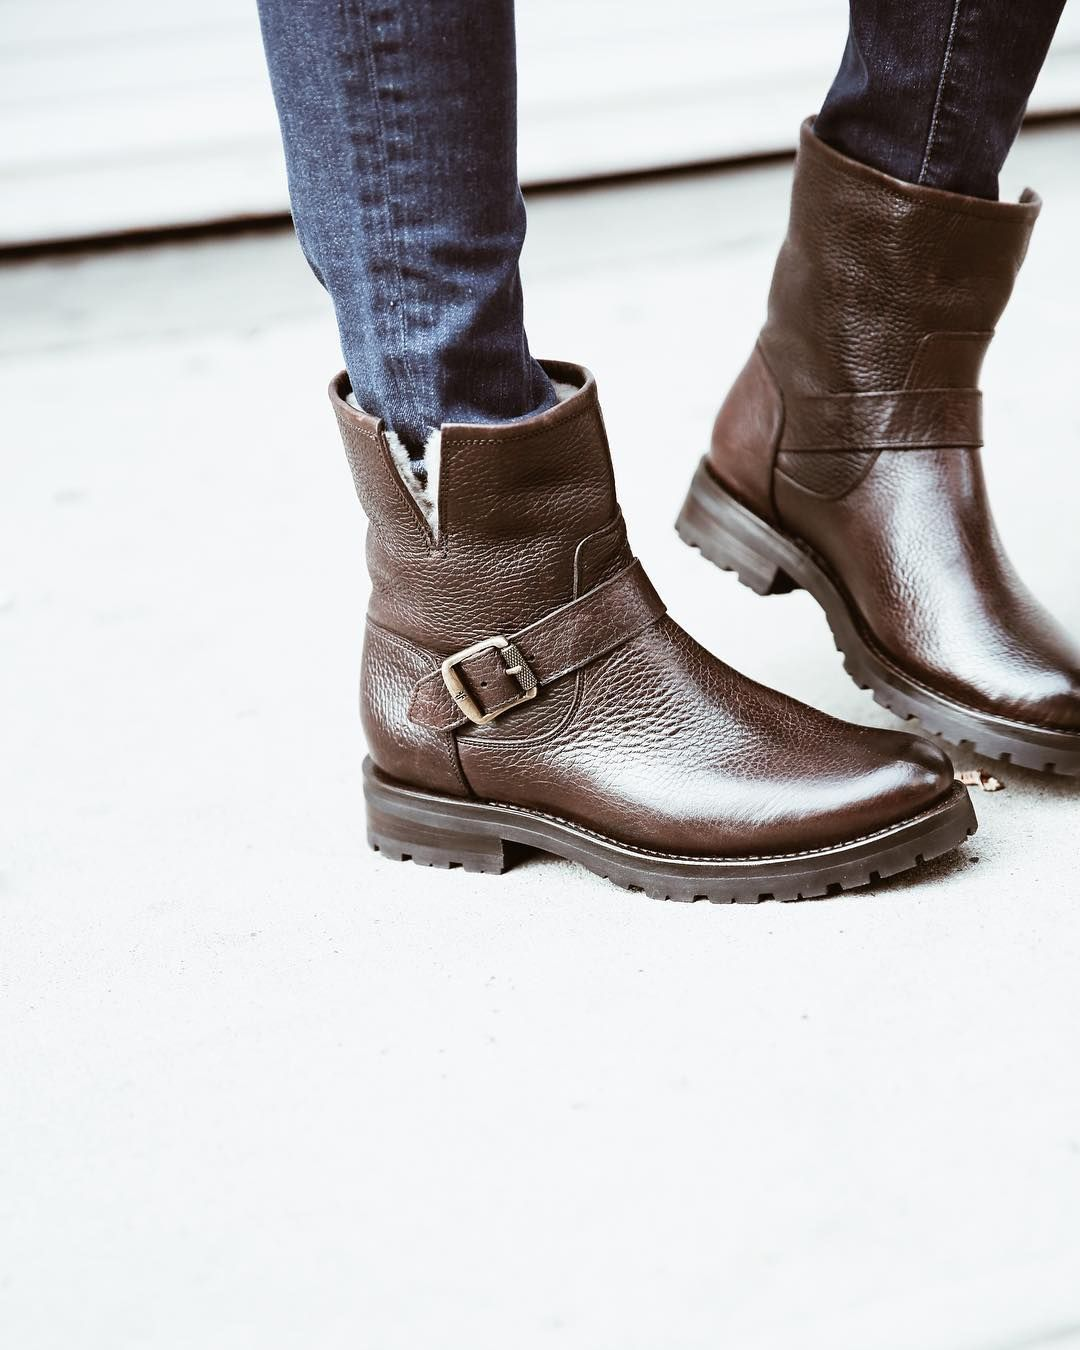 pay with paypal for sale extremely cheap price Frye Natalie Ankle Boots w/ Tags buy cheap low shipping for sale the cheapest bSgGJm7